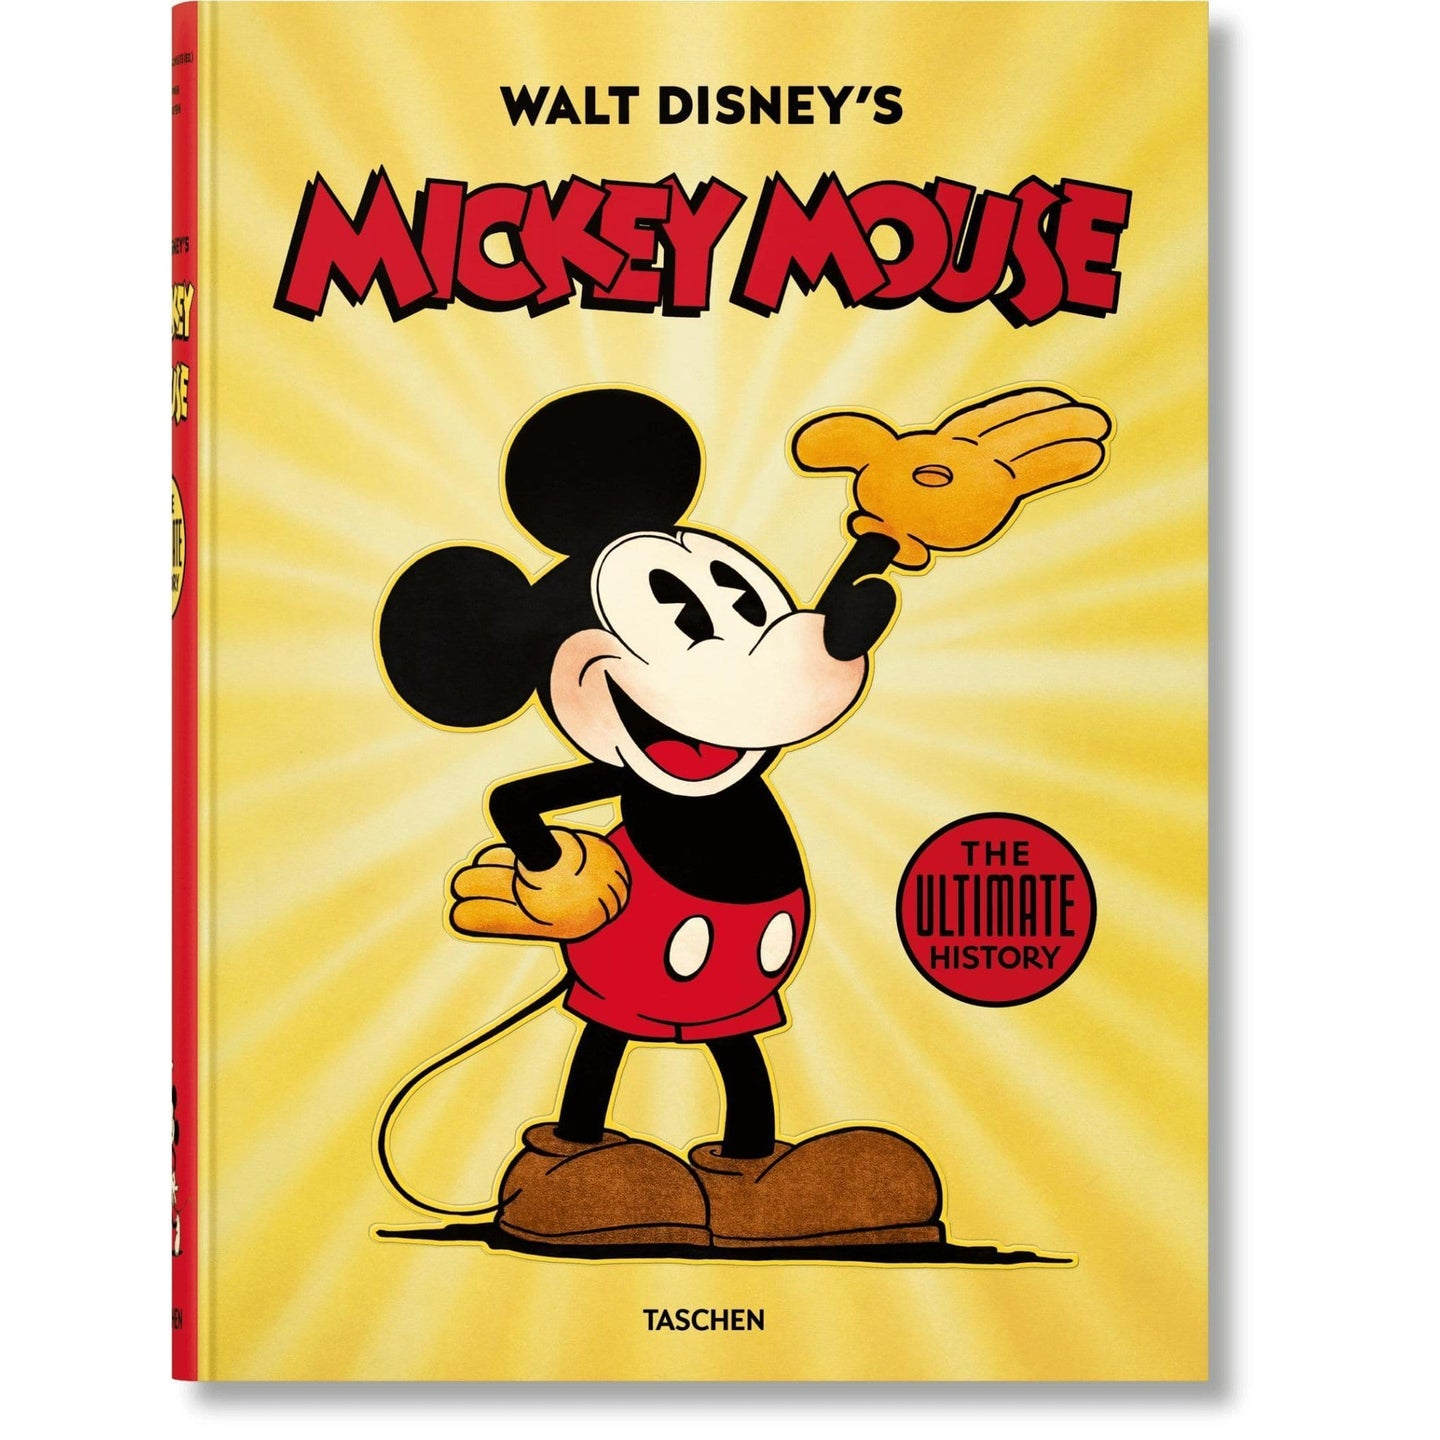 Taschen Walt Disney's Mickey Mouse - The Ultimate History XXL / Neighborhood Goods